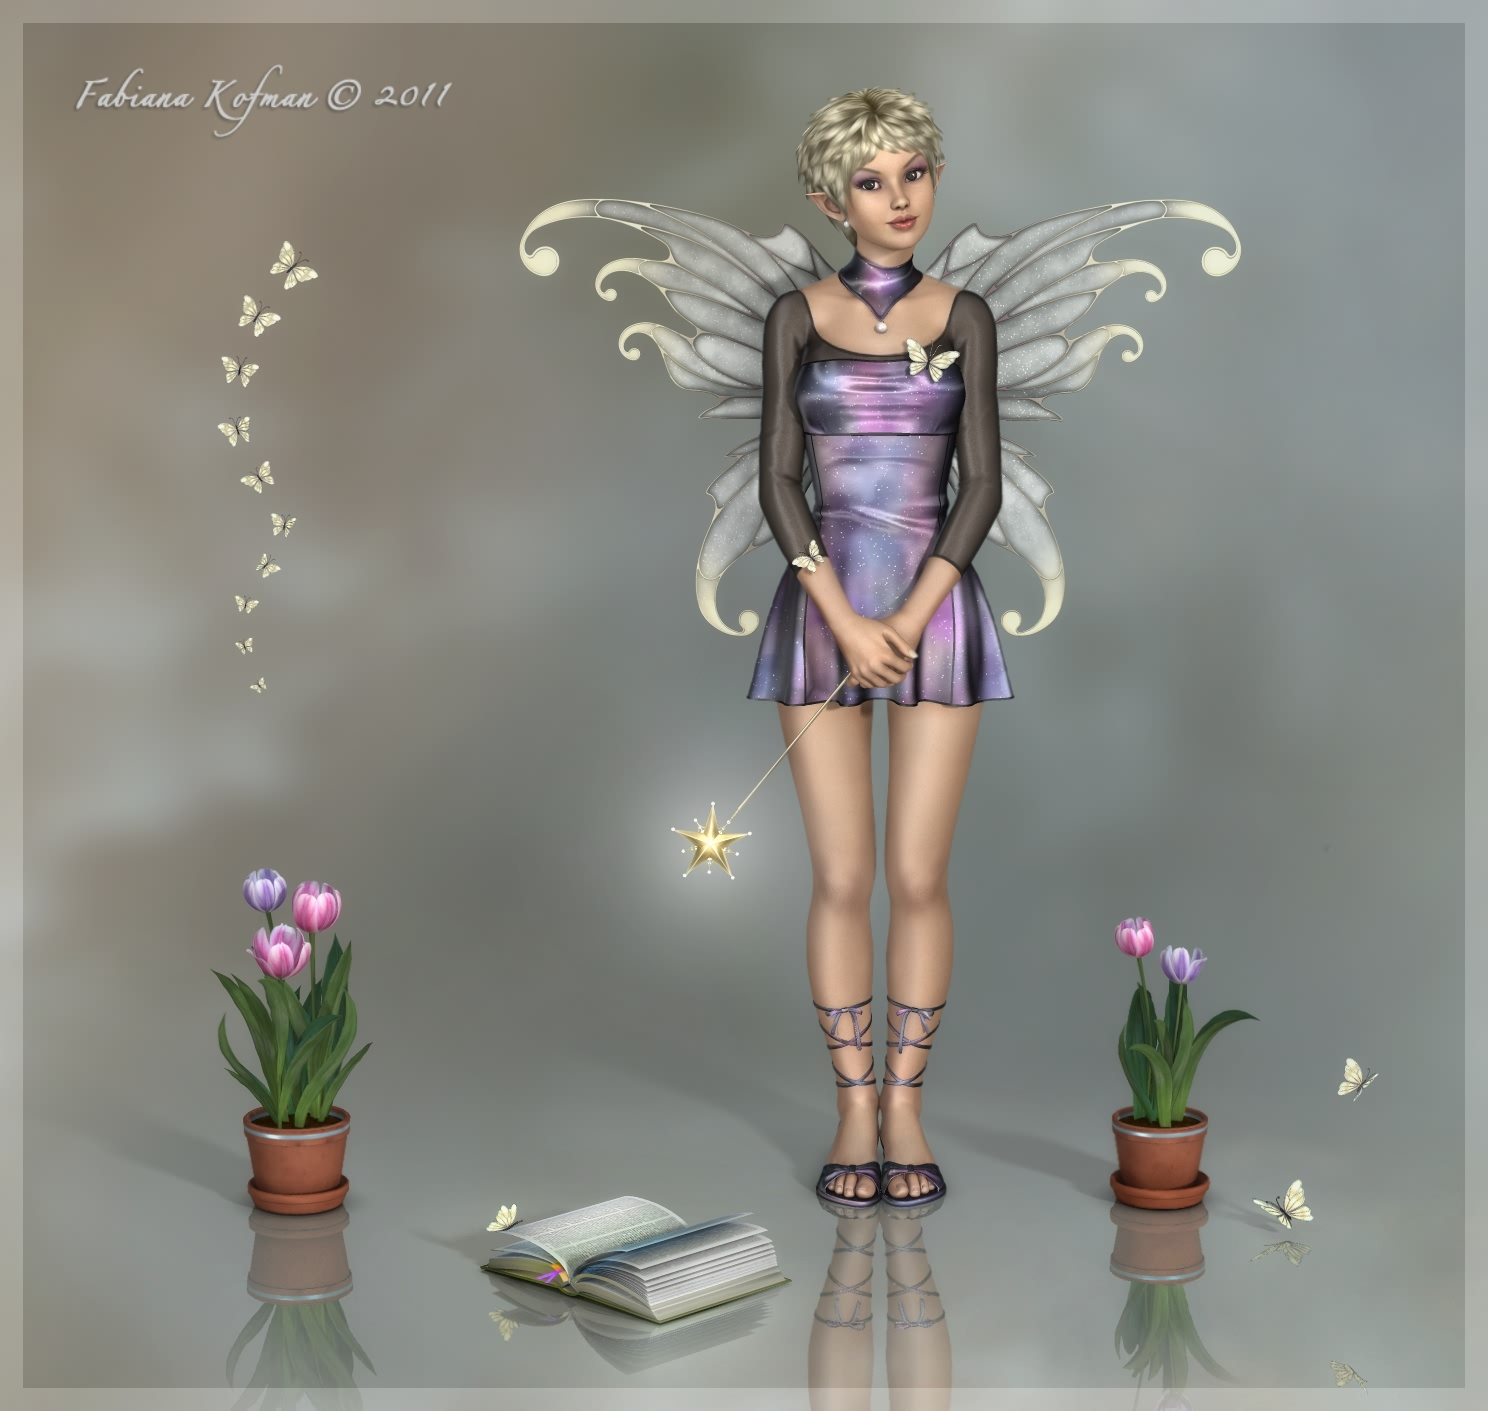 Education: How to train future Faeries